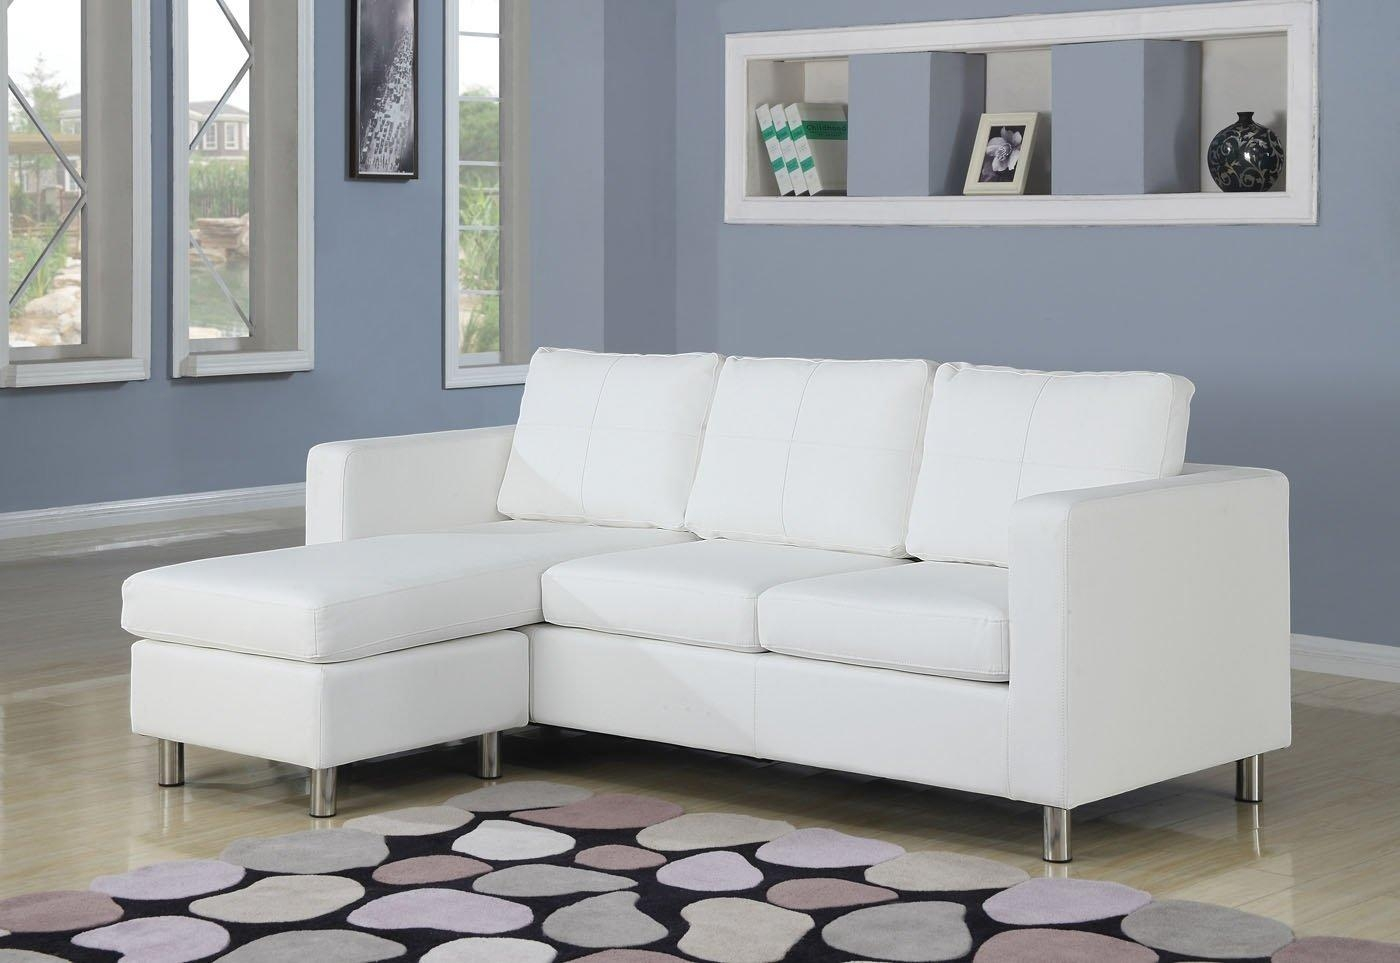 Decorate The Walls With Small Sectional Sofa — Jen & Joes Design Intended For Small Sofas With Chaise Lounge (Image 4 of 20)